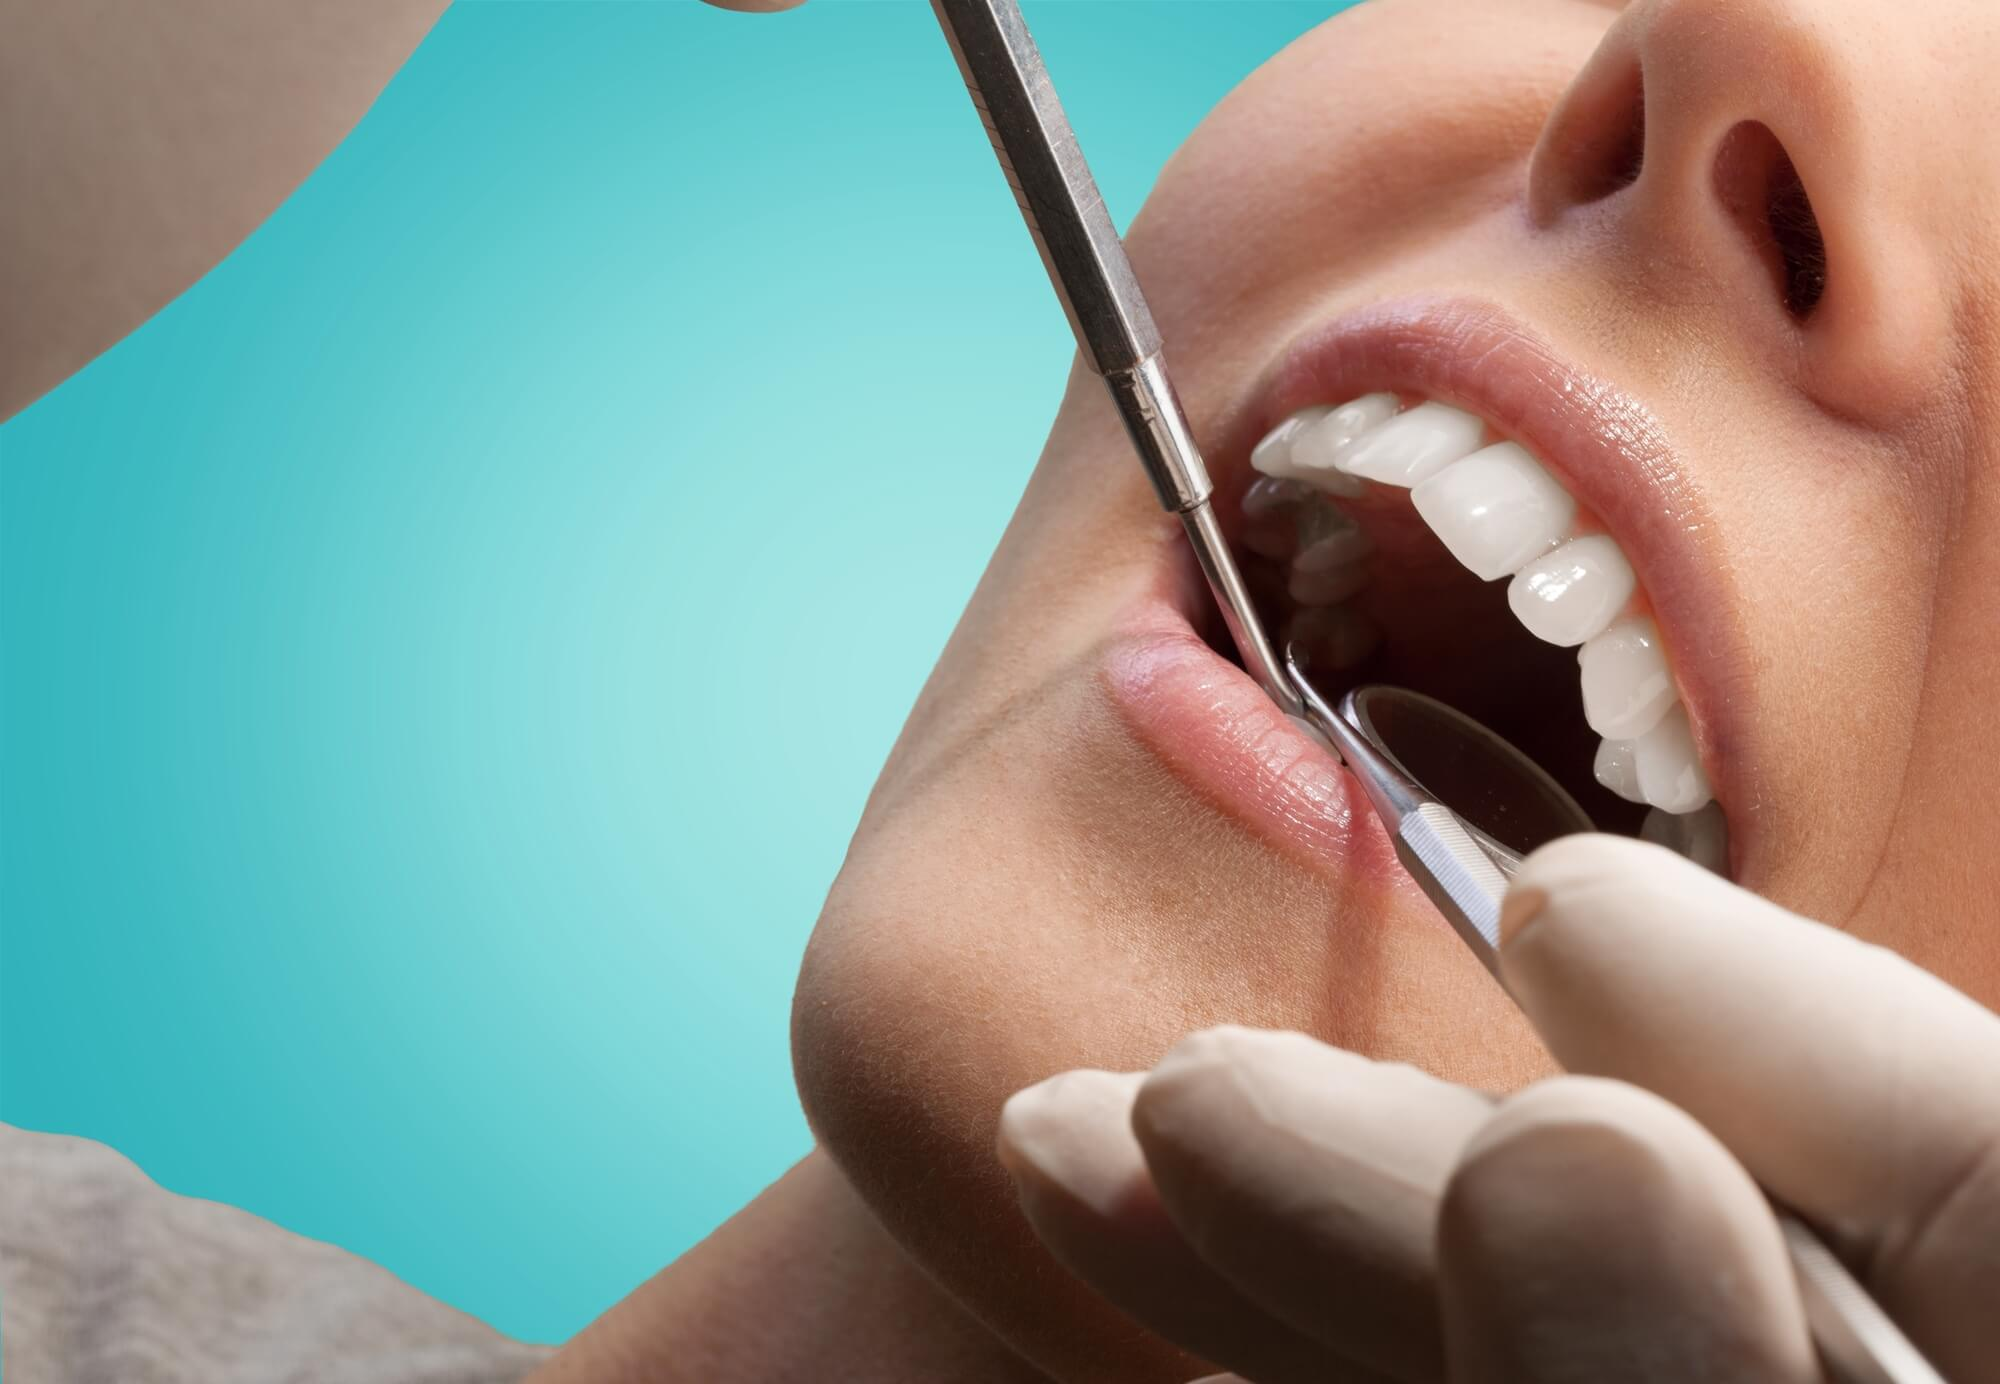 4 Replacement Options for People Who Have Missing Teeth